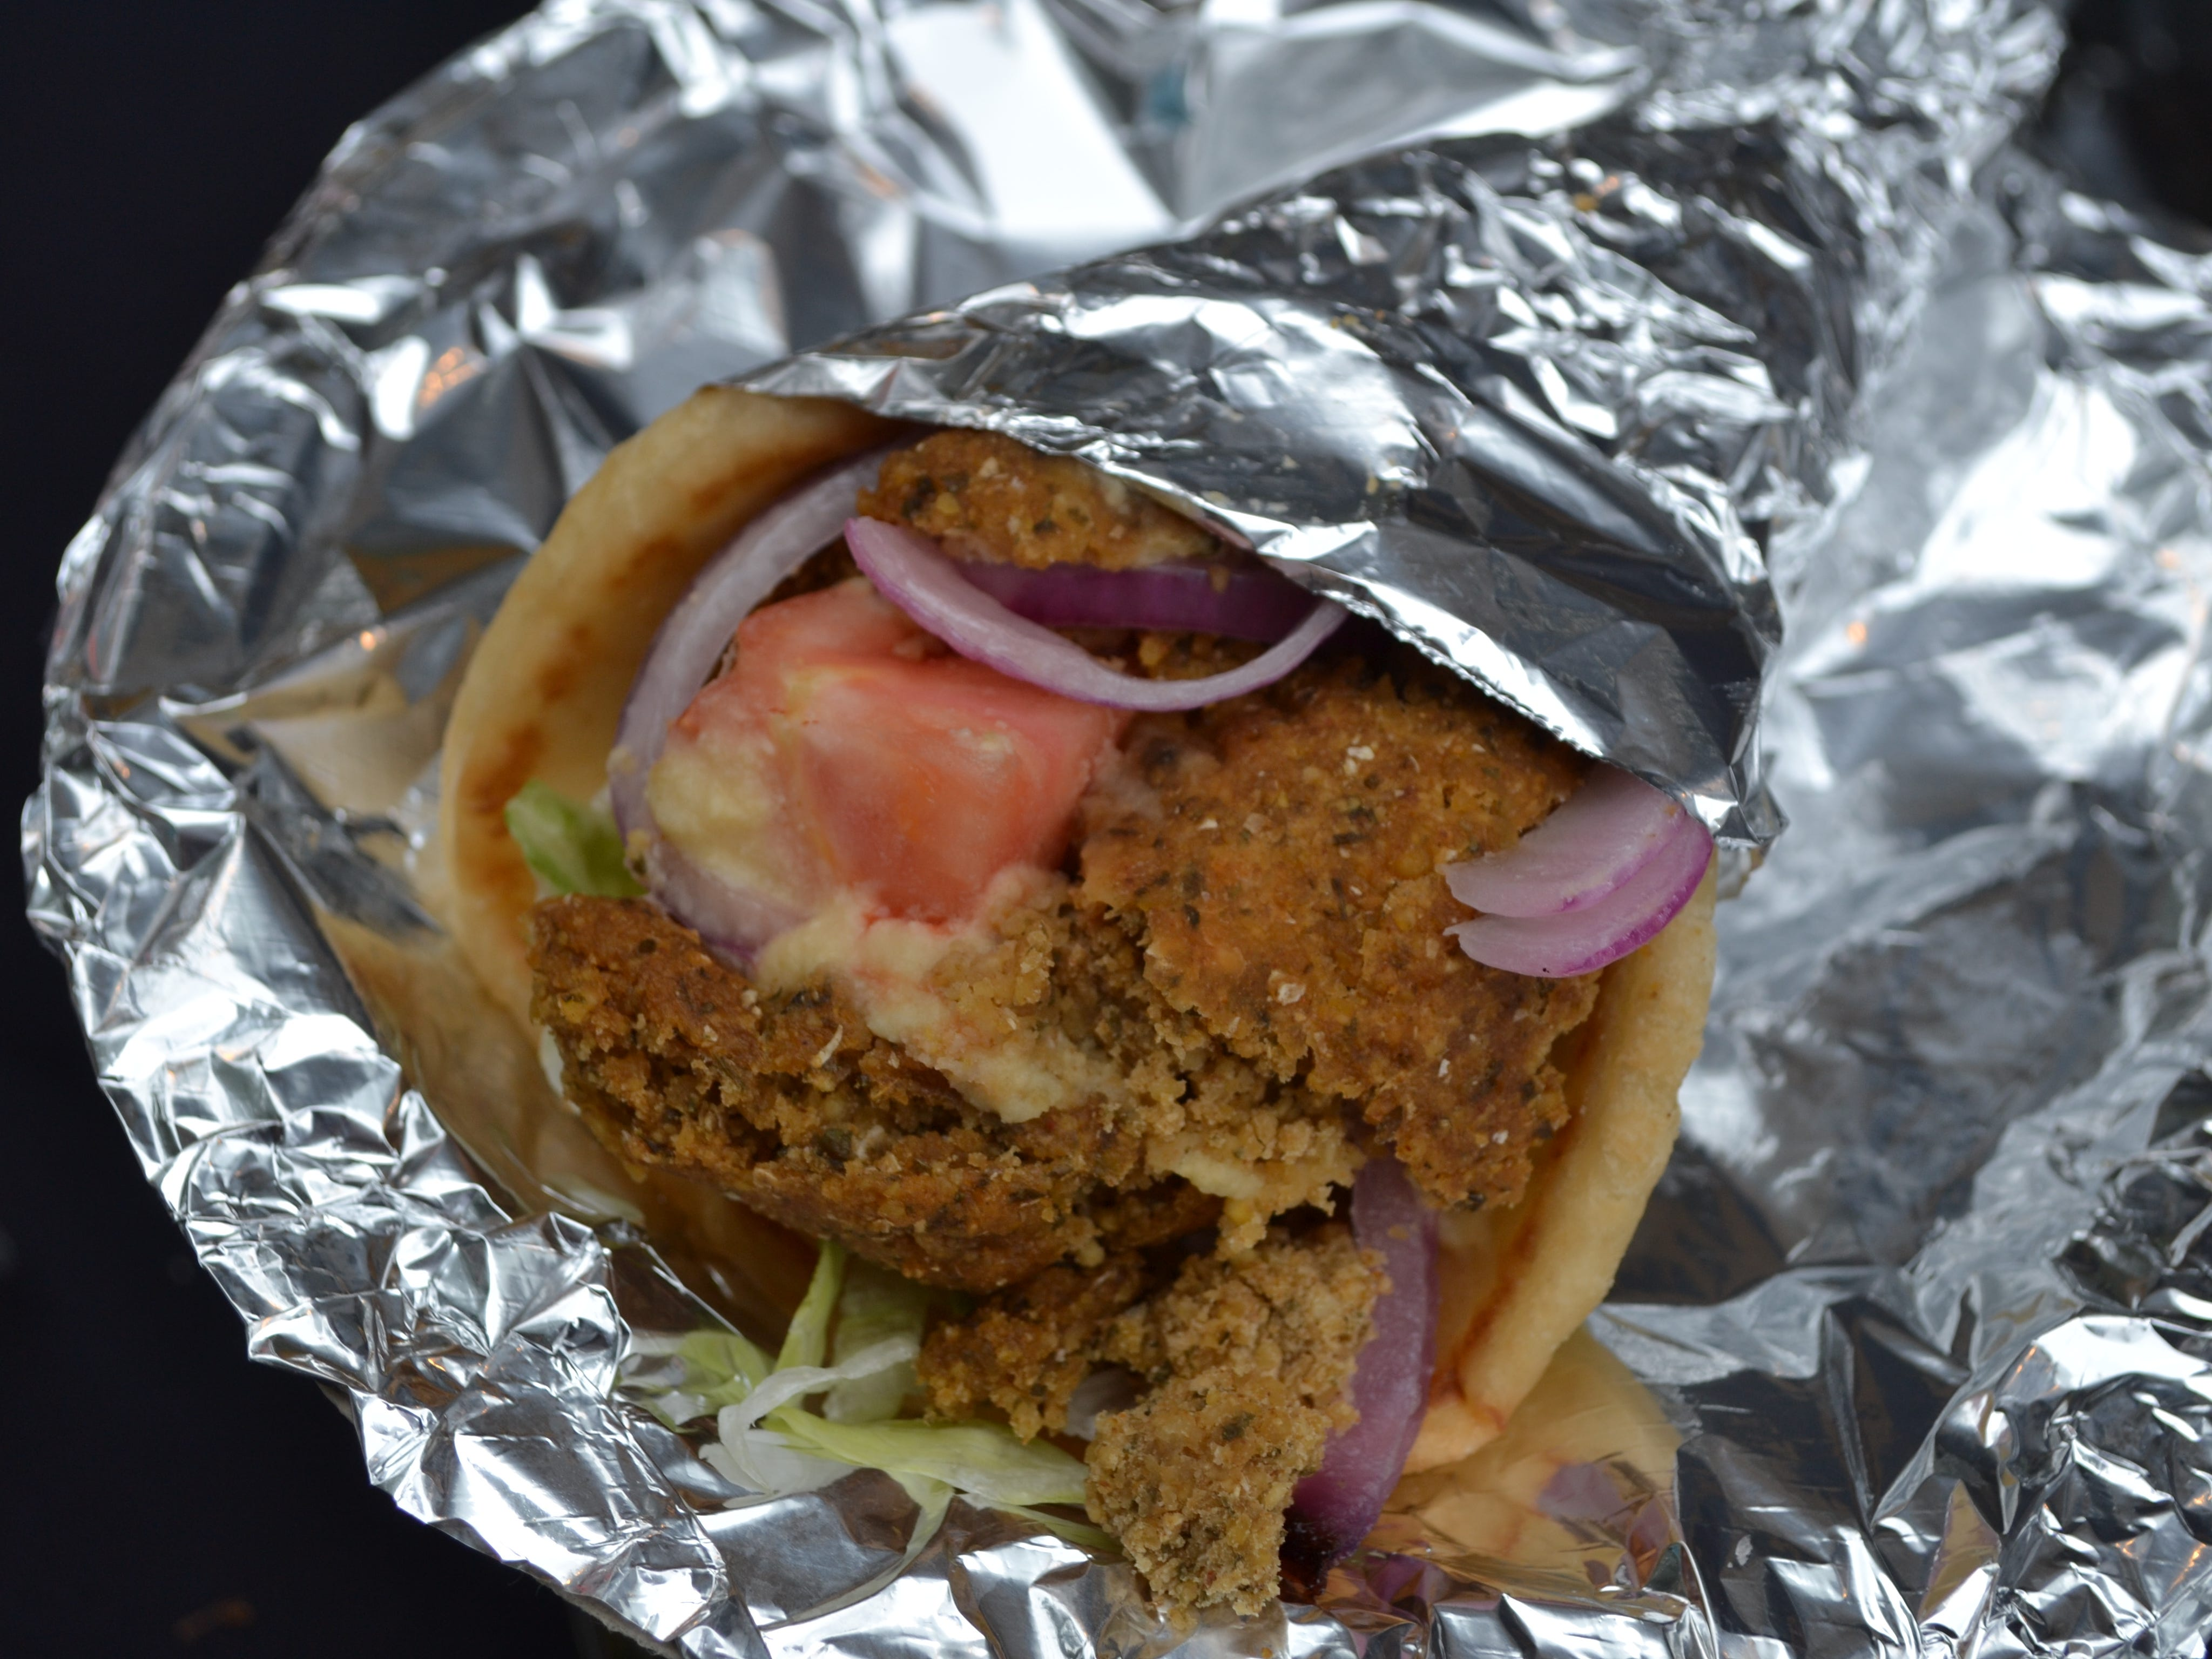 Nader's Bistro is offering falafels and other Greek and Italian foods on Main Street near the Main Stage at the National Folk Festival.